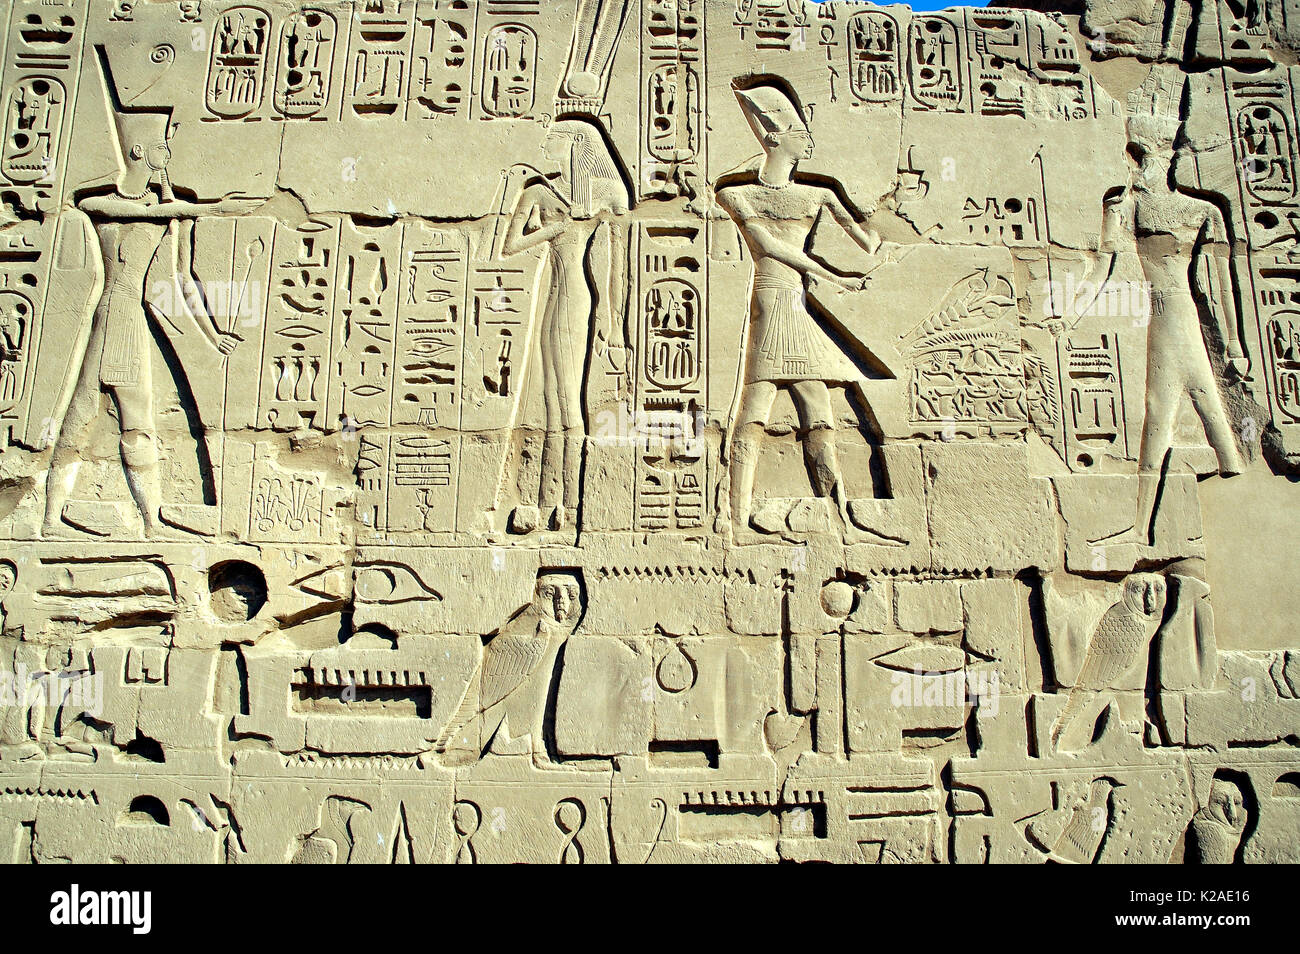 Wall reliefs from the Temple of Karnak, Luxor. Egypt - Stock Image